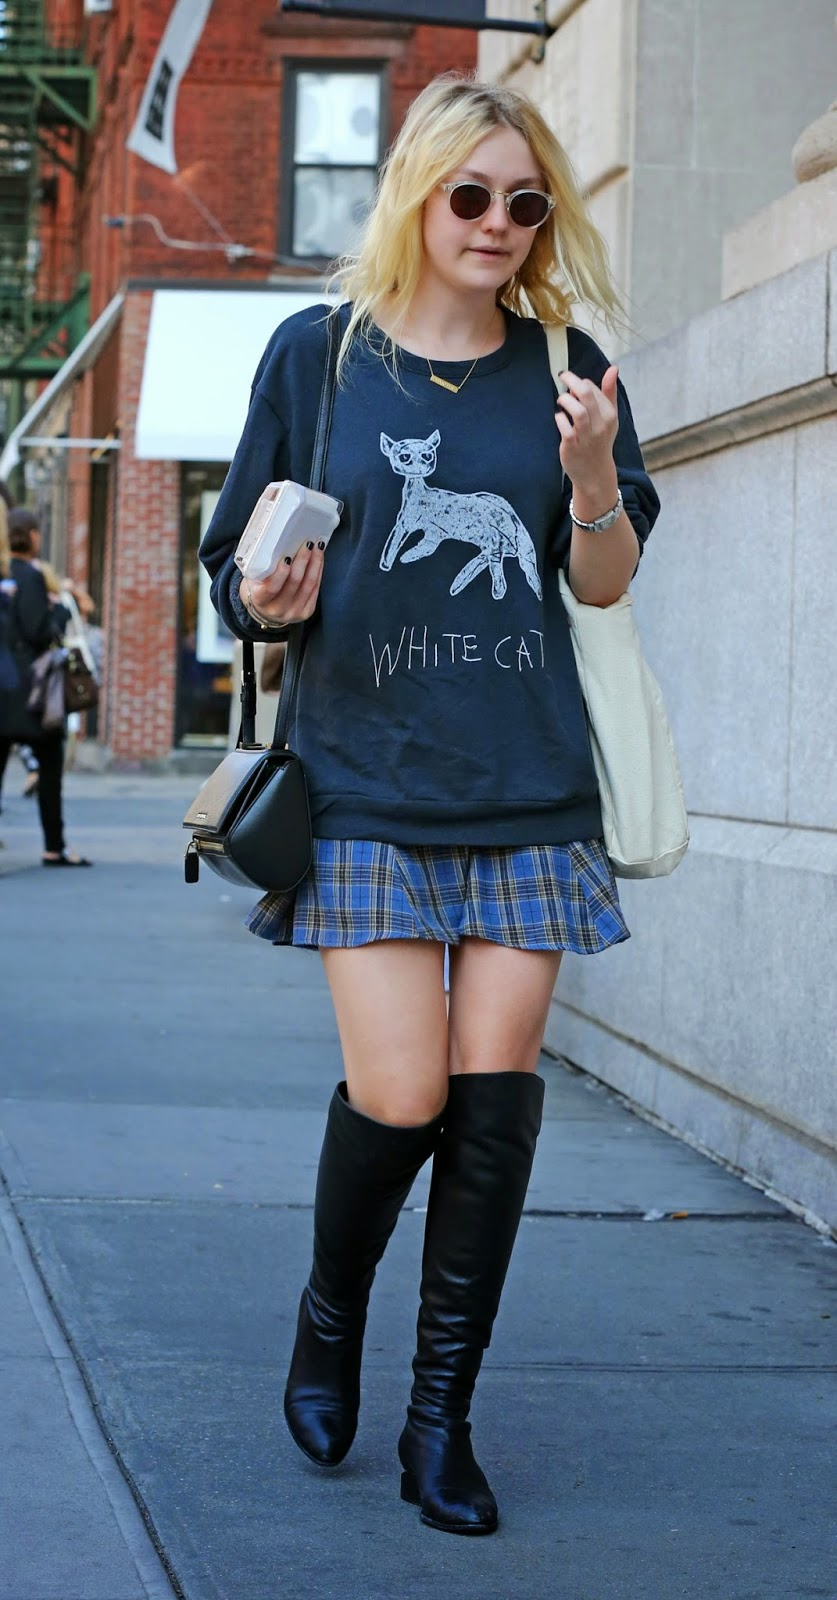 Dakota Fanning Channels Hipster Style In Miniskirt And